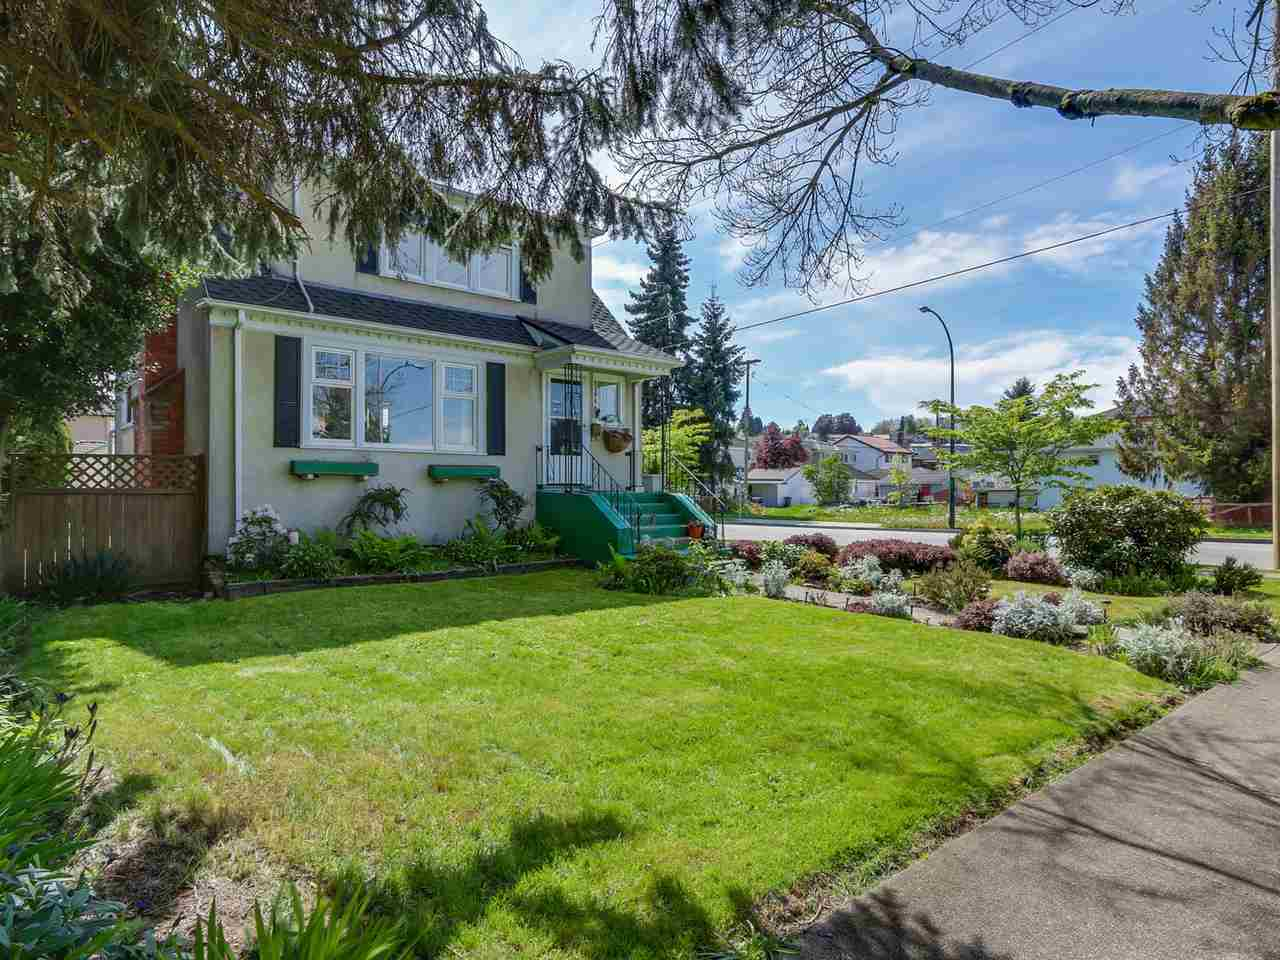 Photo 3: 2796 W 21ST Avenue in Vancouver: Arbutus House for sale (Vancouver West)  : MLS(r) # R2078868